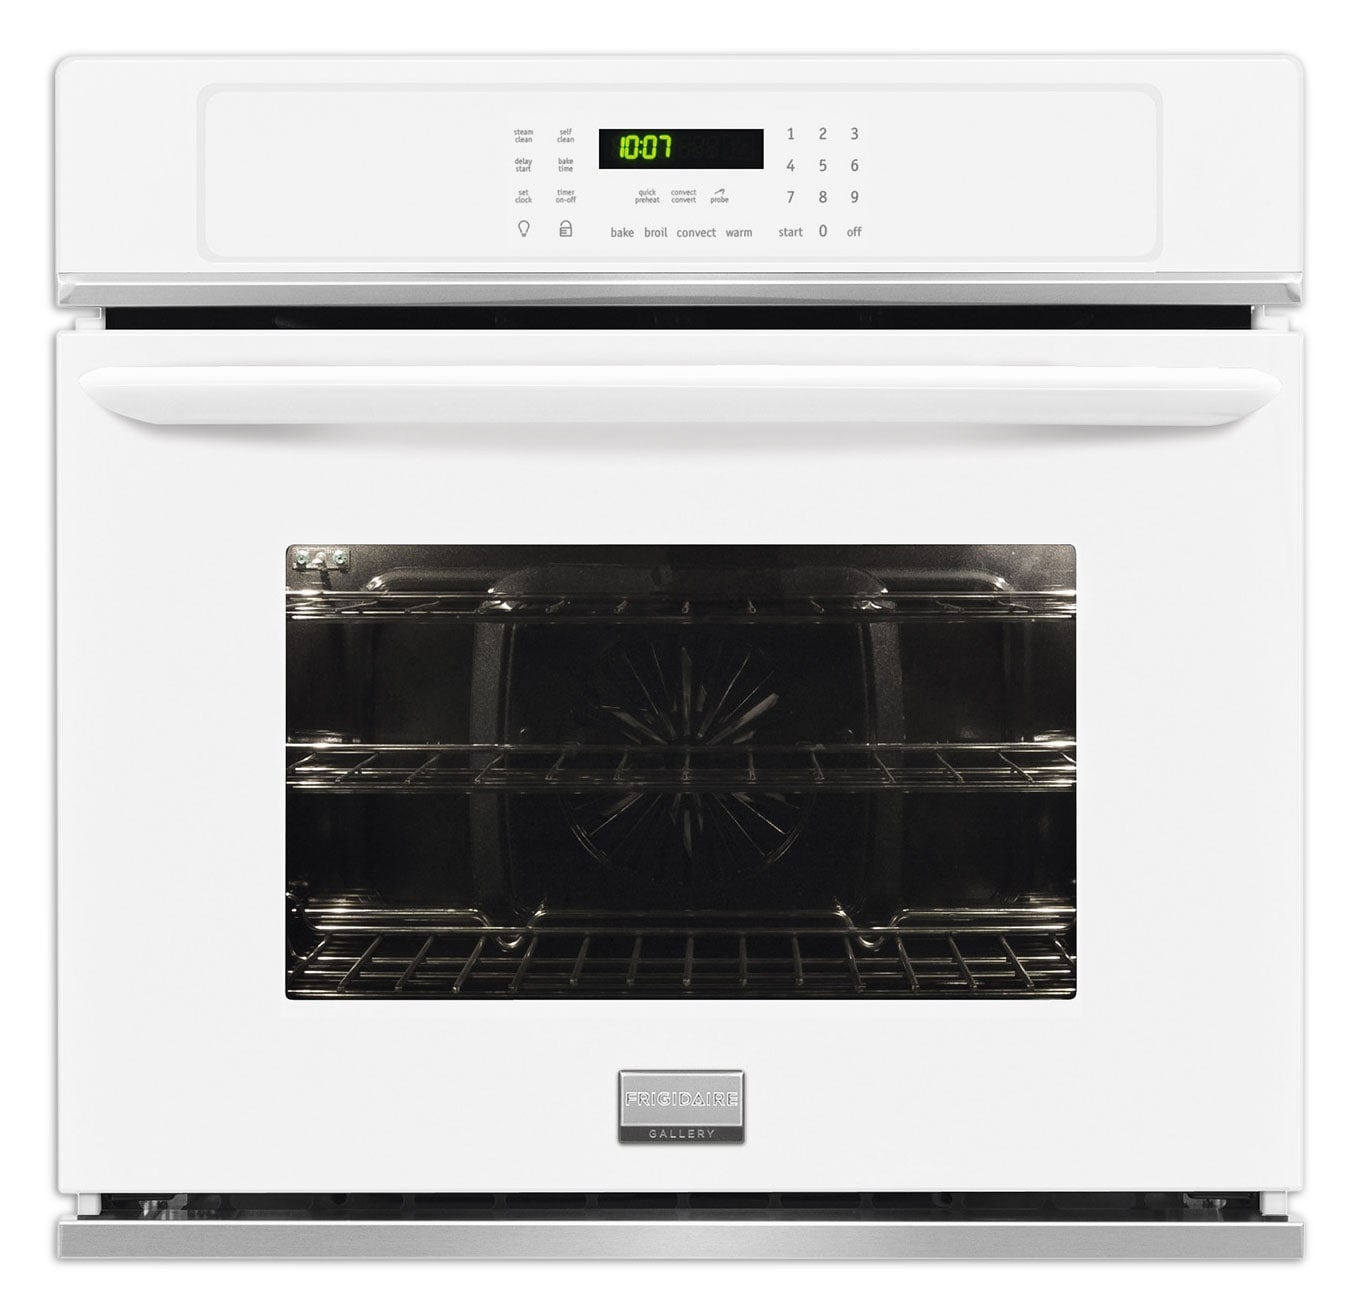 Frigidaire Gallery White Convection Wall Oven (4.6 Cu. Ft.) - FGEW3065PW